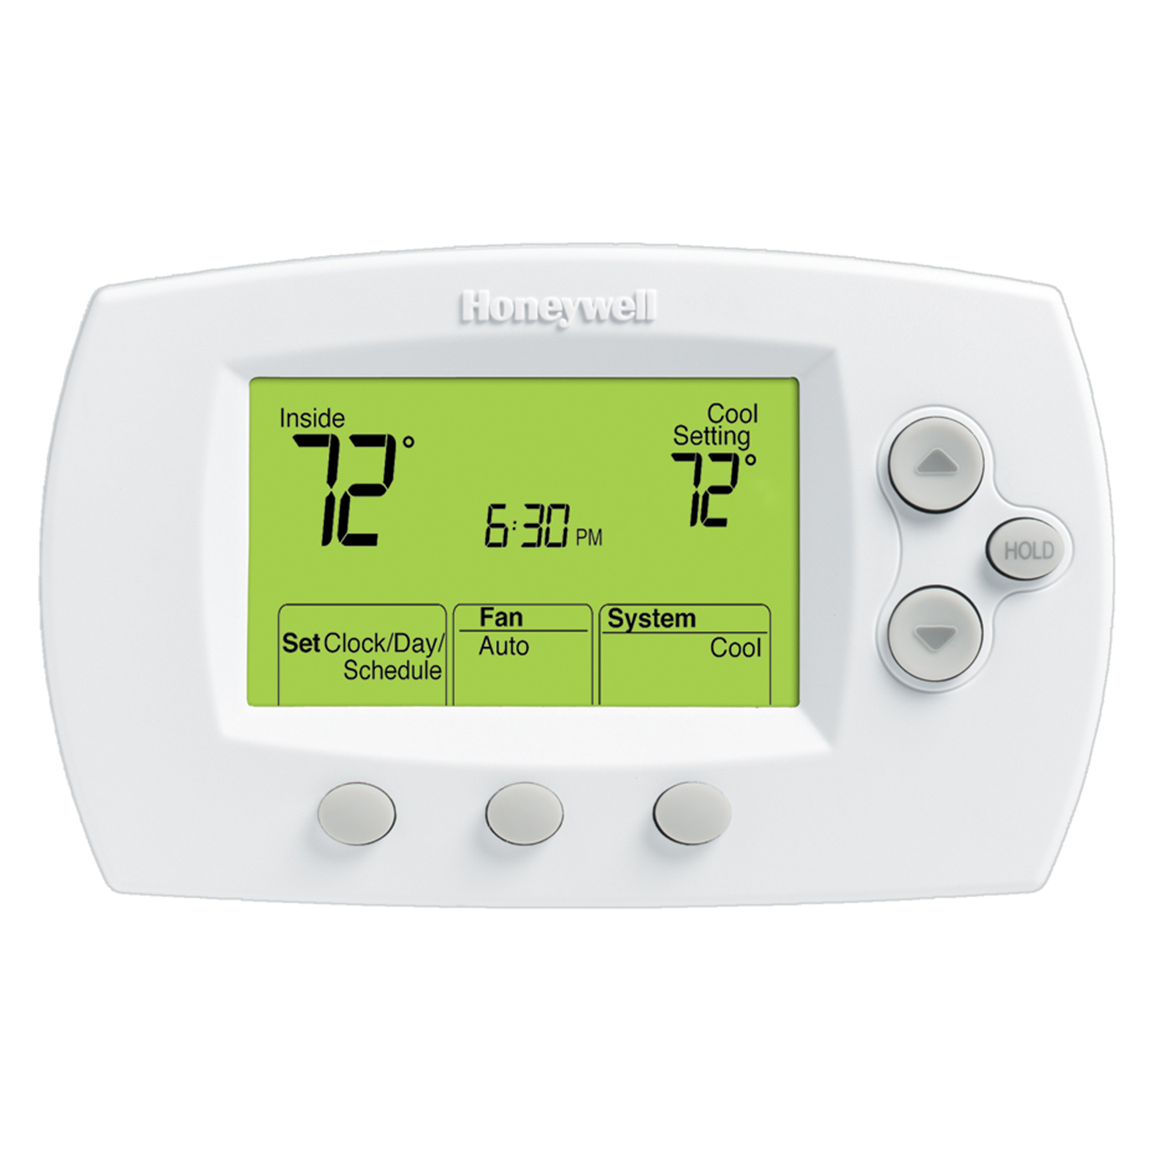 Honeywell FocusPRO 6000 Series Thermostat